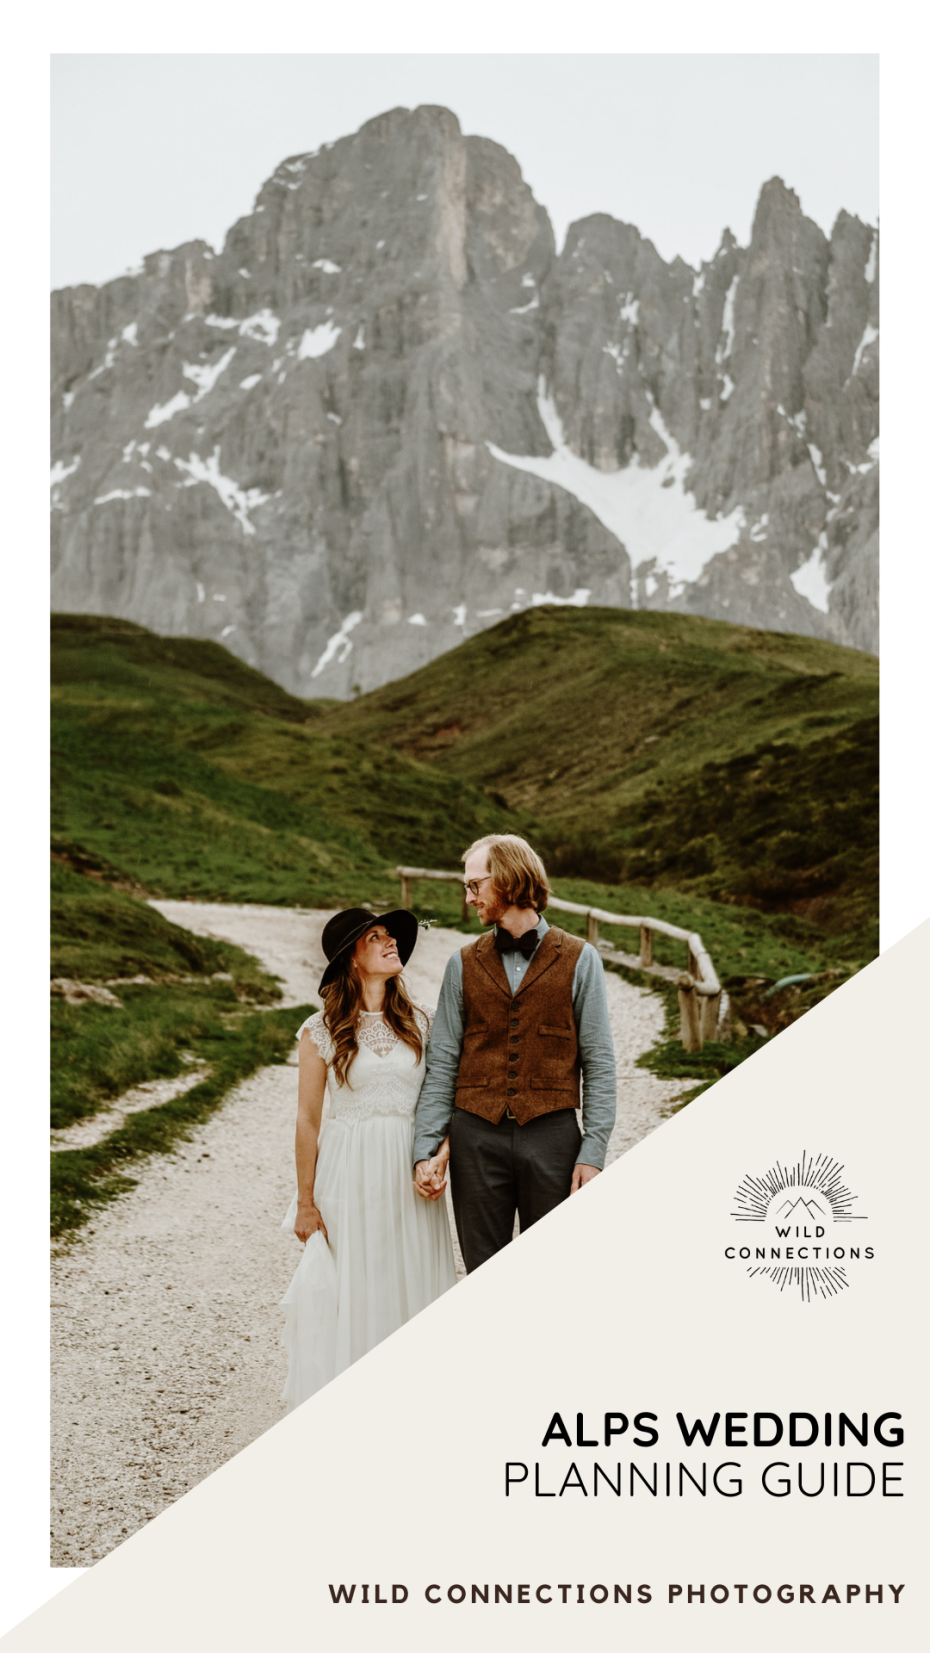 Alps wedding planning guide by Wild Connections Photography